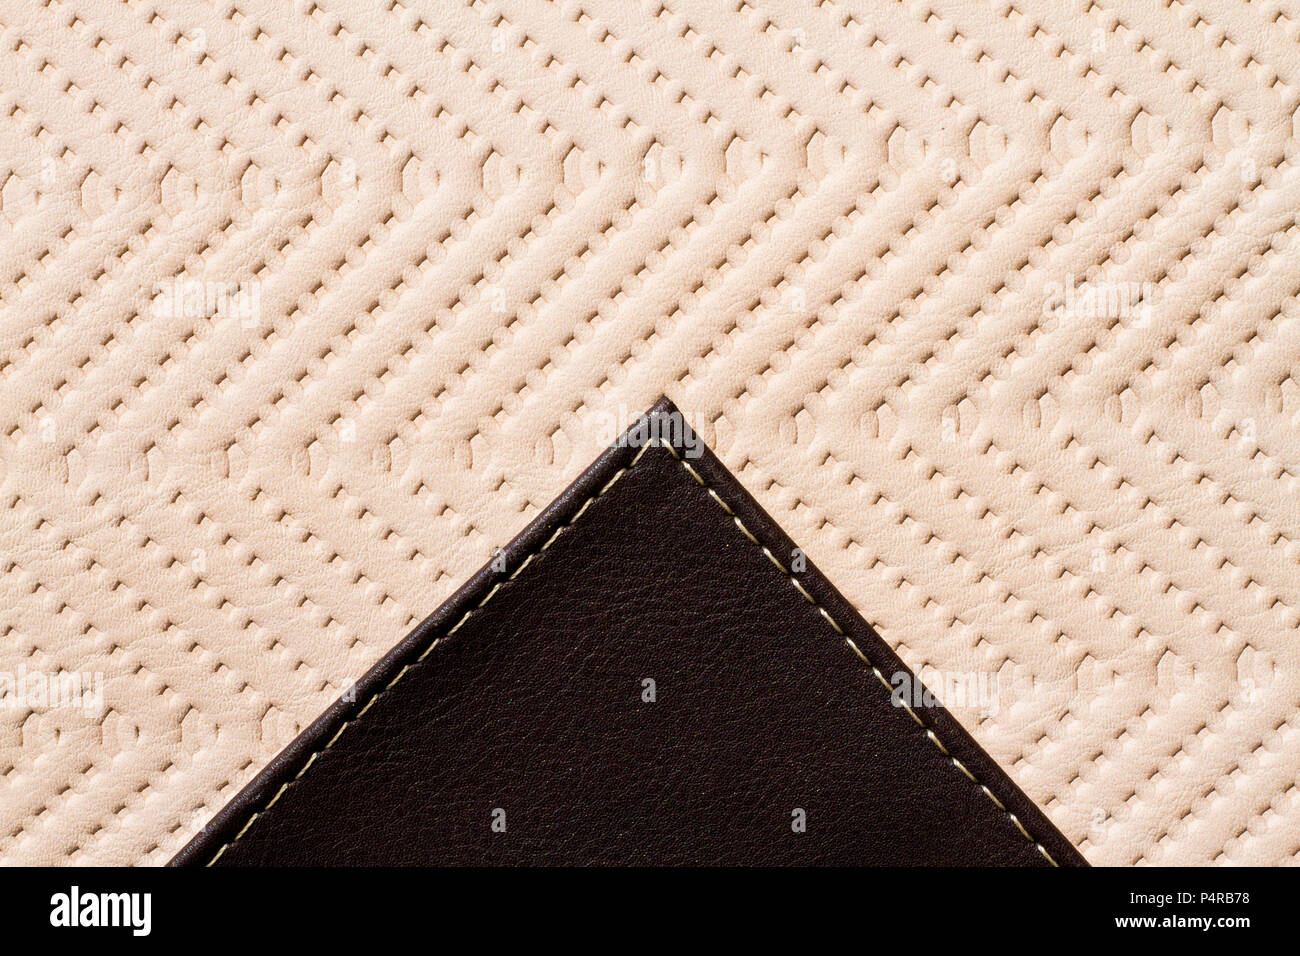 Synthetic material texture close up - Stock Image